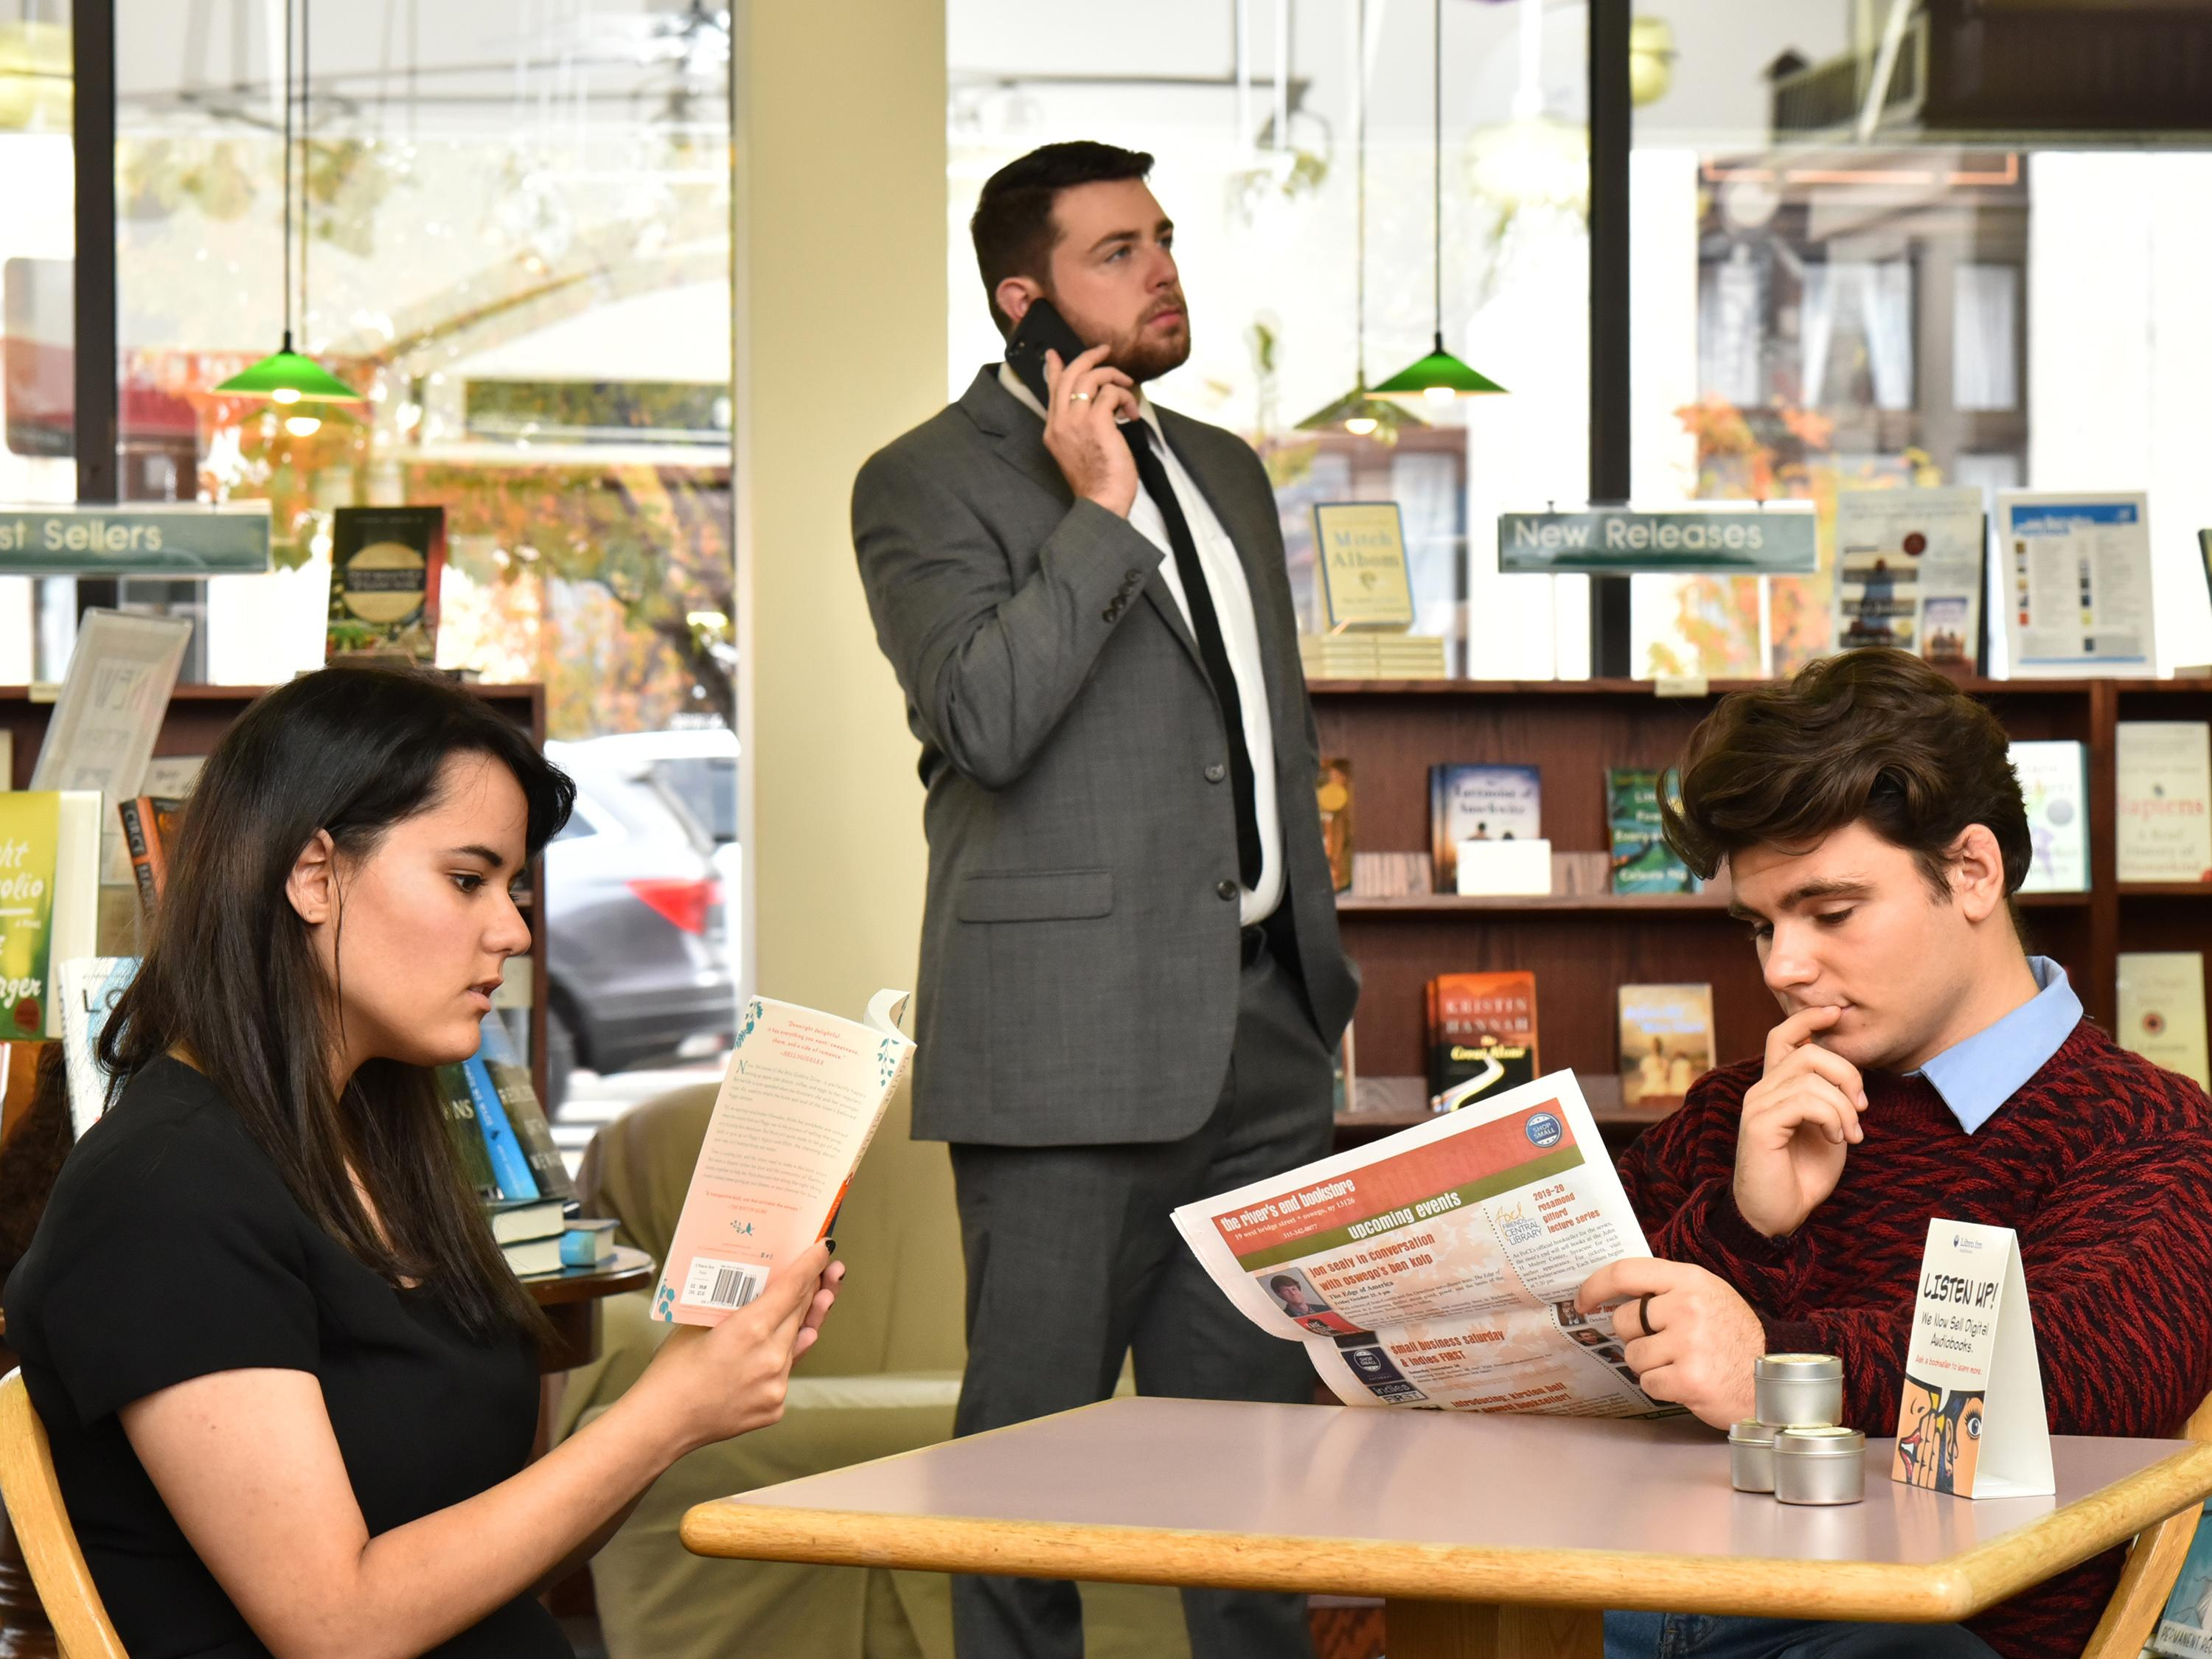 Production image for Dead Man's Cell Phone with actors in River's End Bookstore